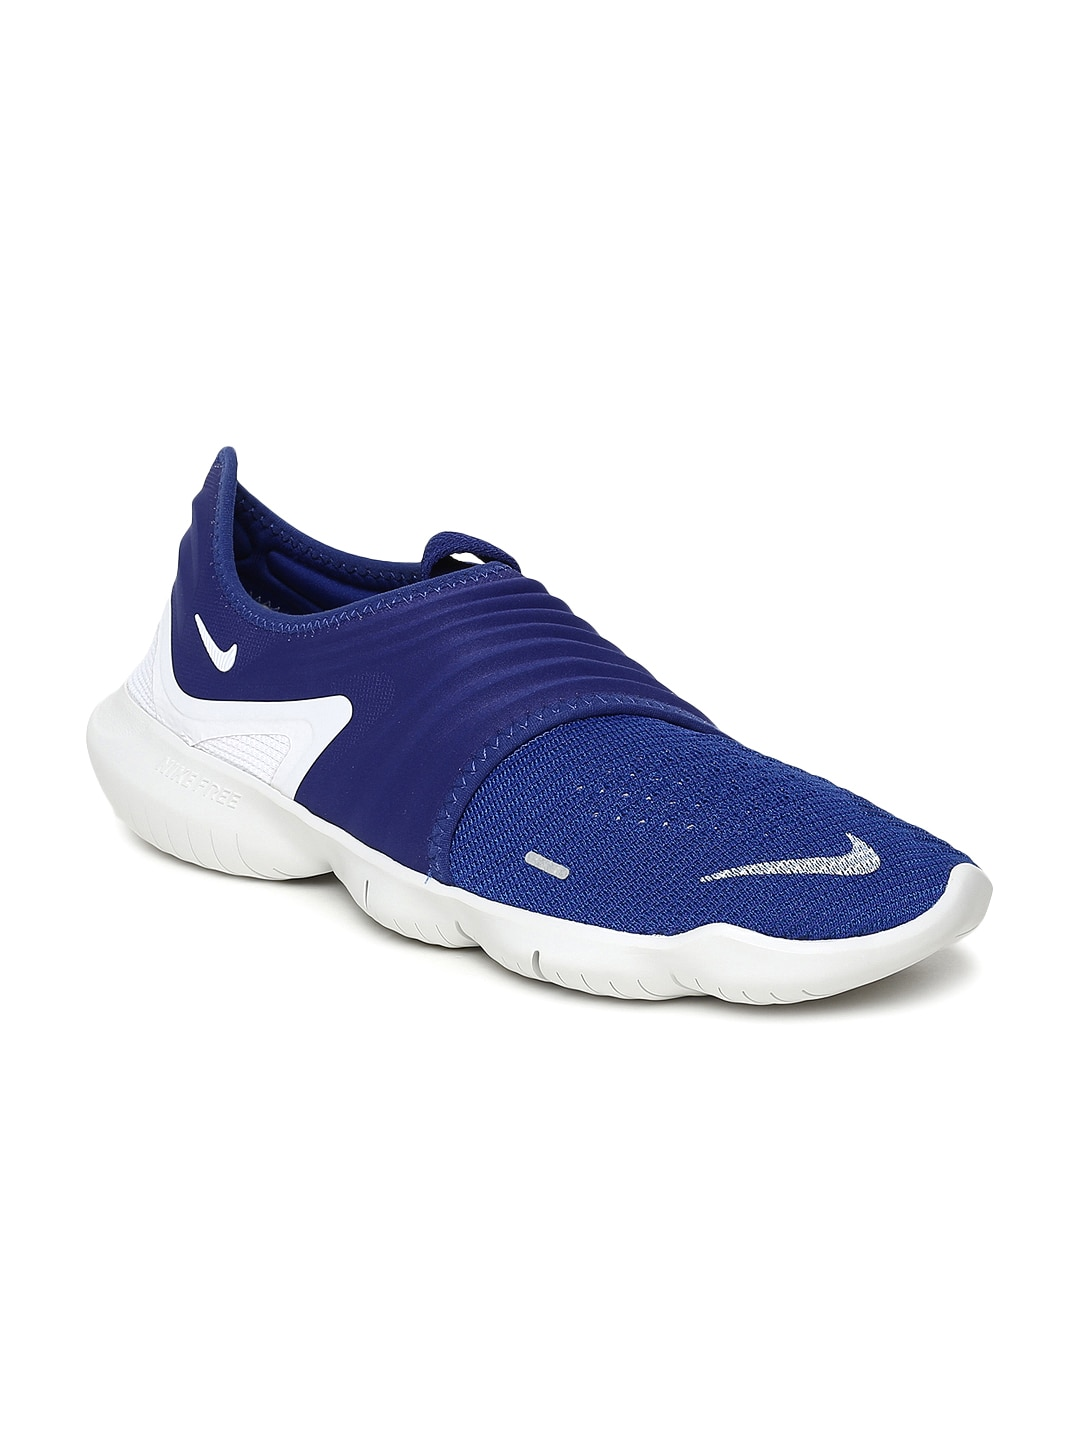 062b204553890 Nike Free Running Shoes - Buy Nike Free Running Shoes online in India